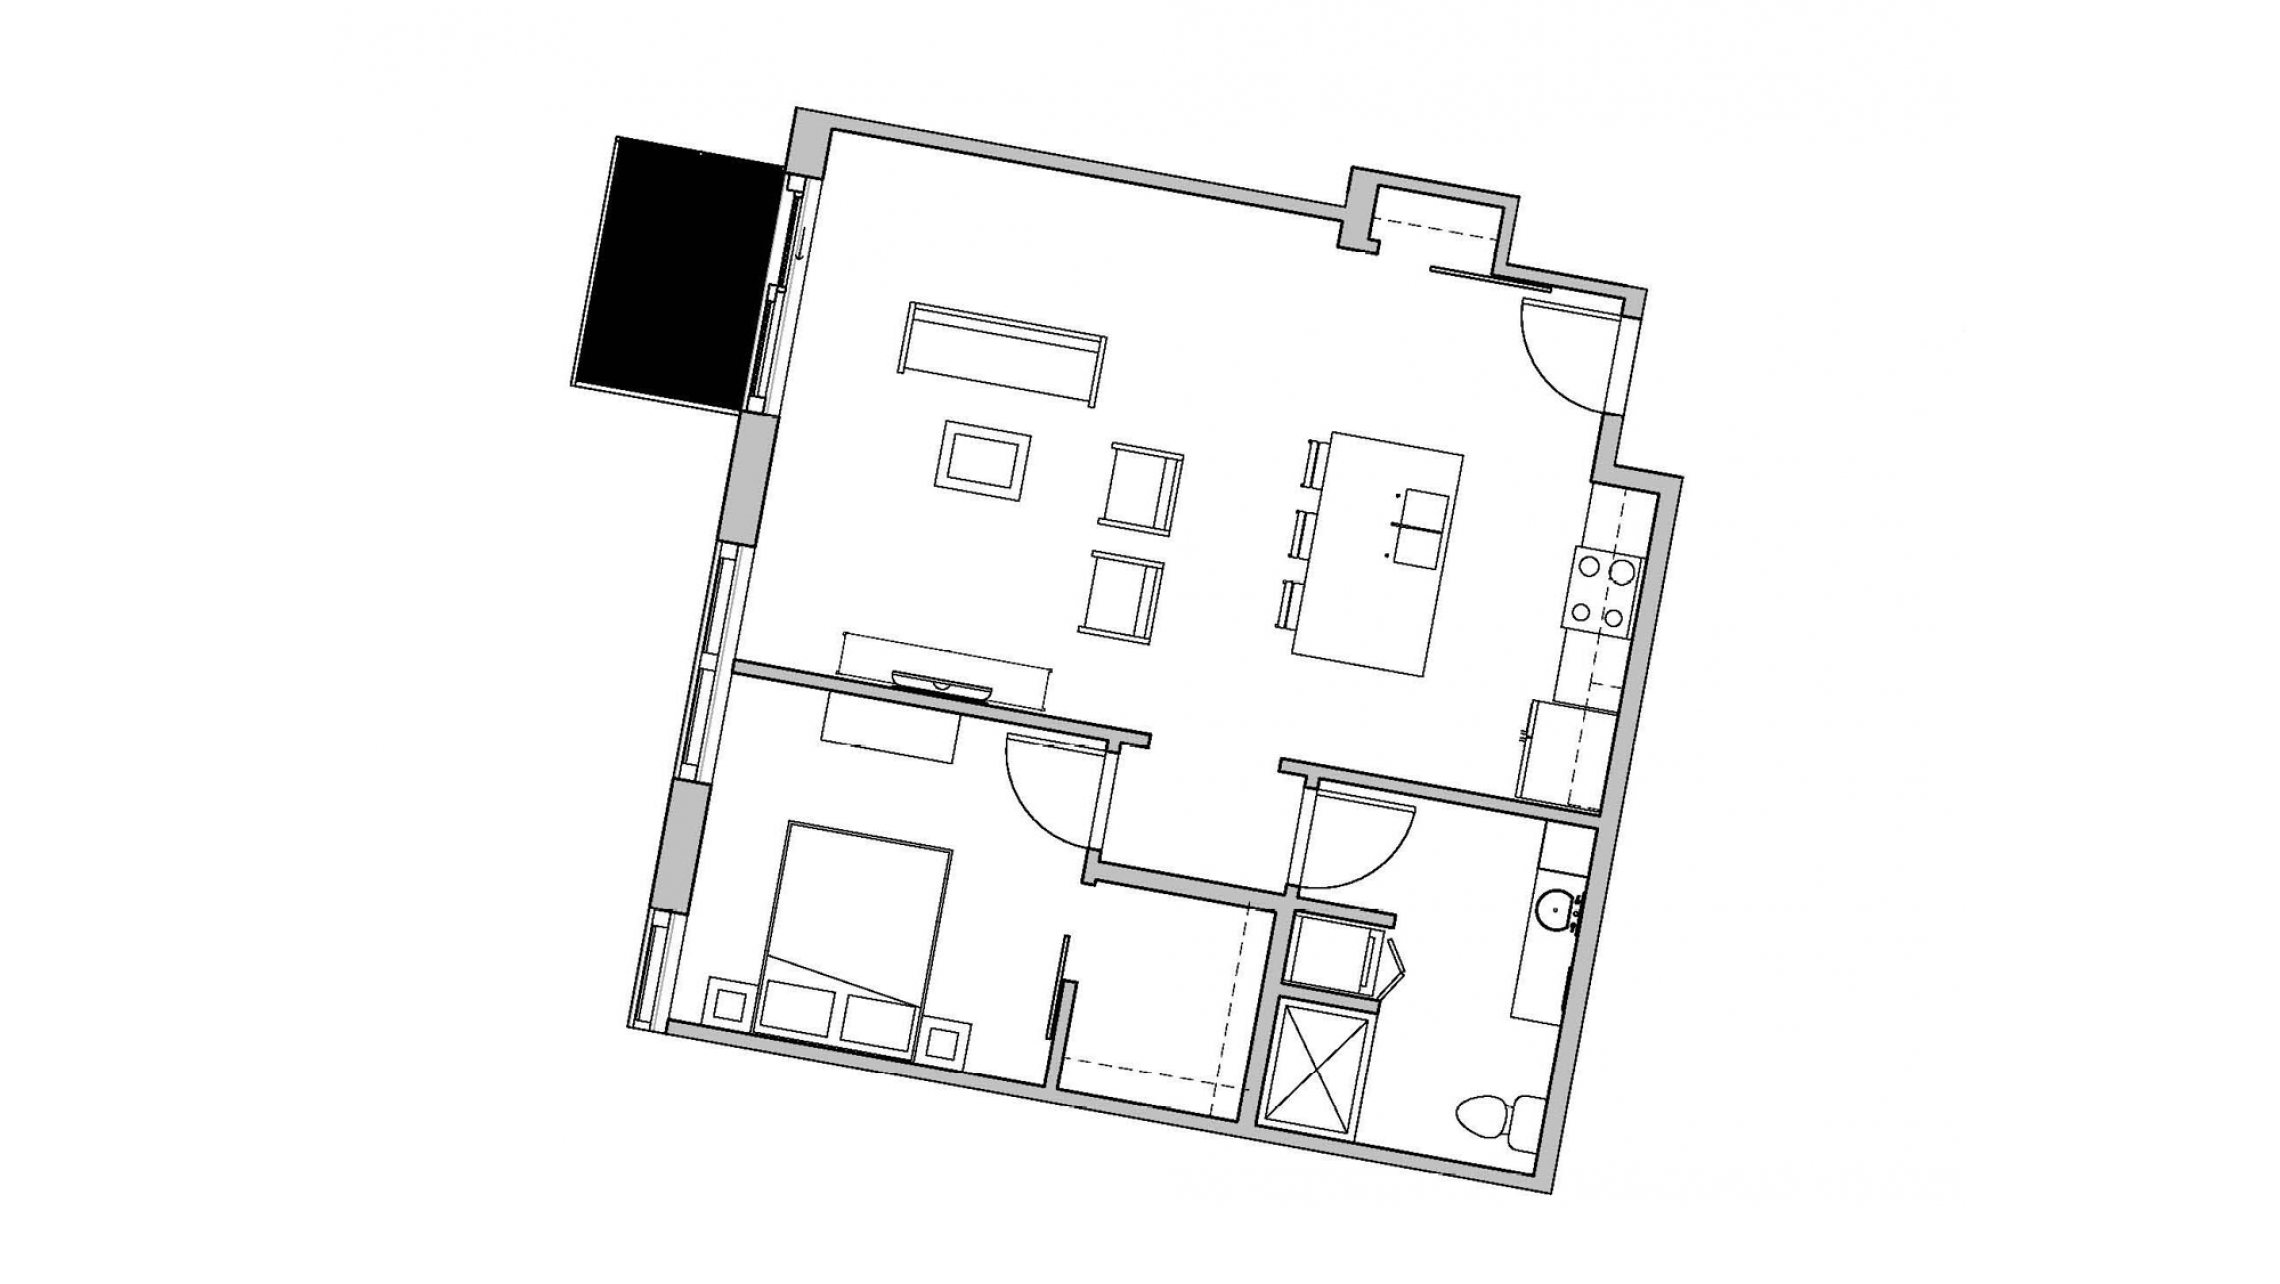 ULI Seven27 328 - One Bedroom, One Bathroom